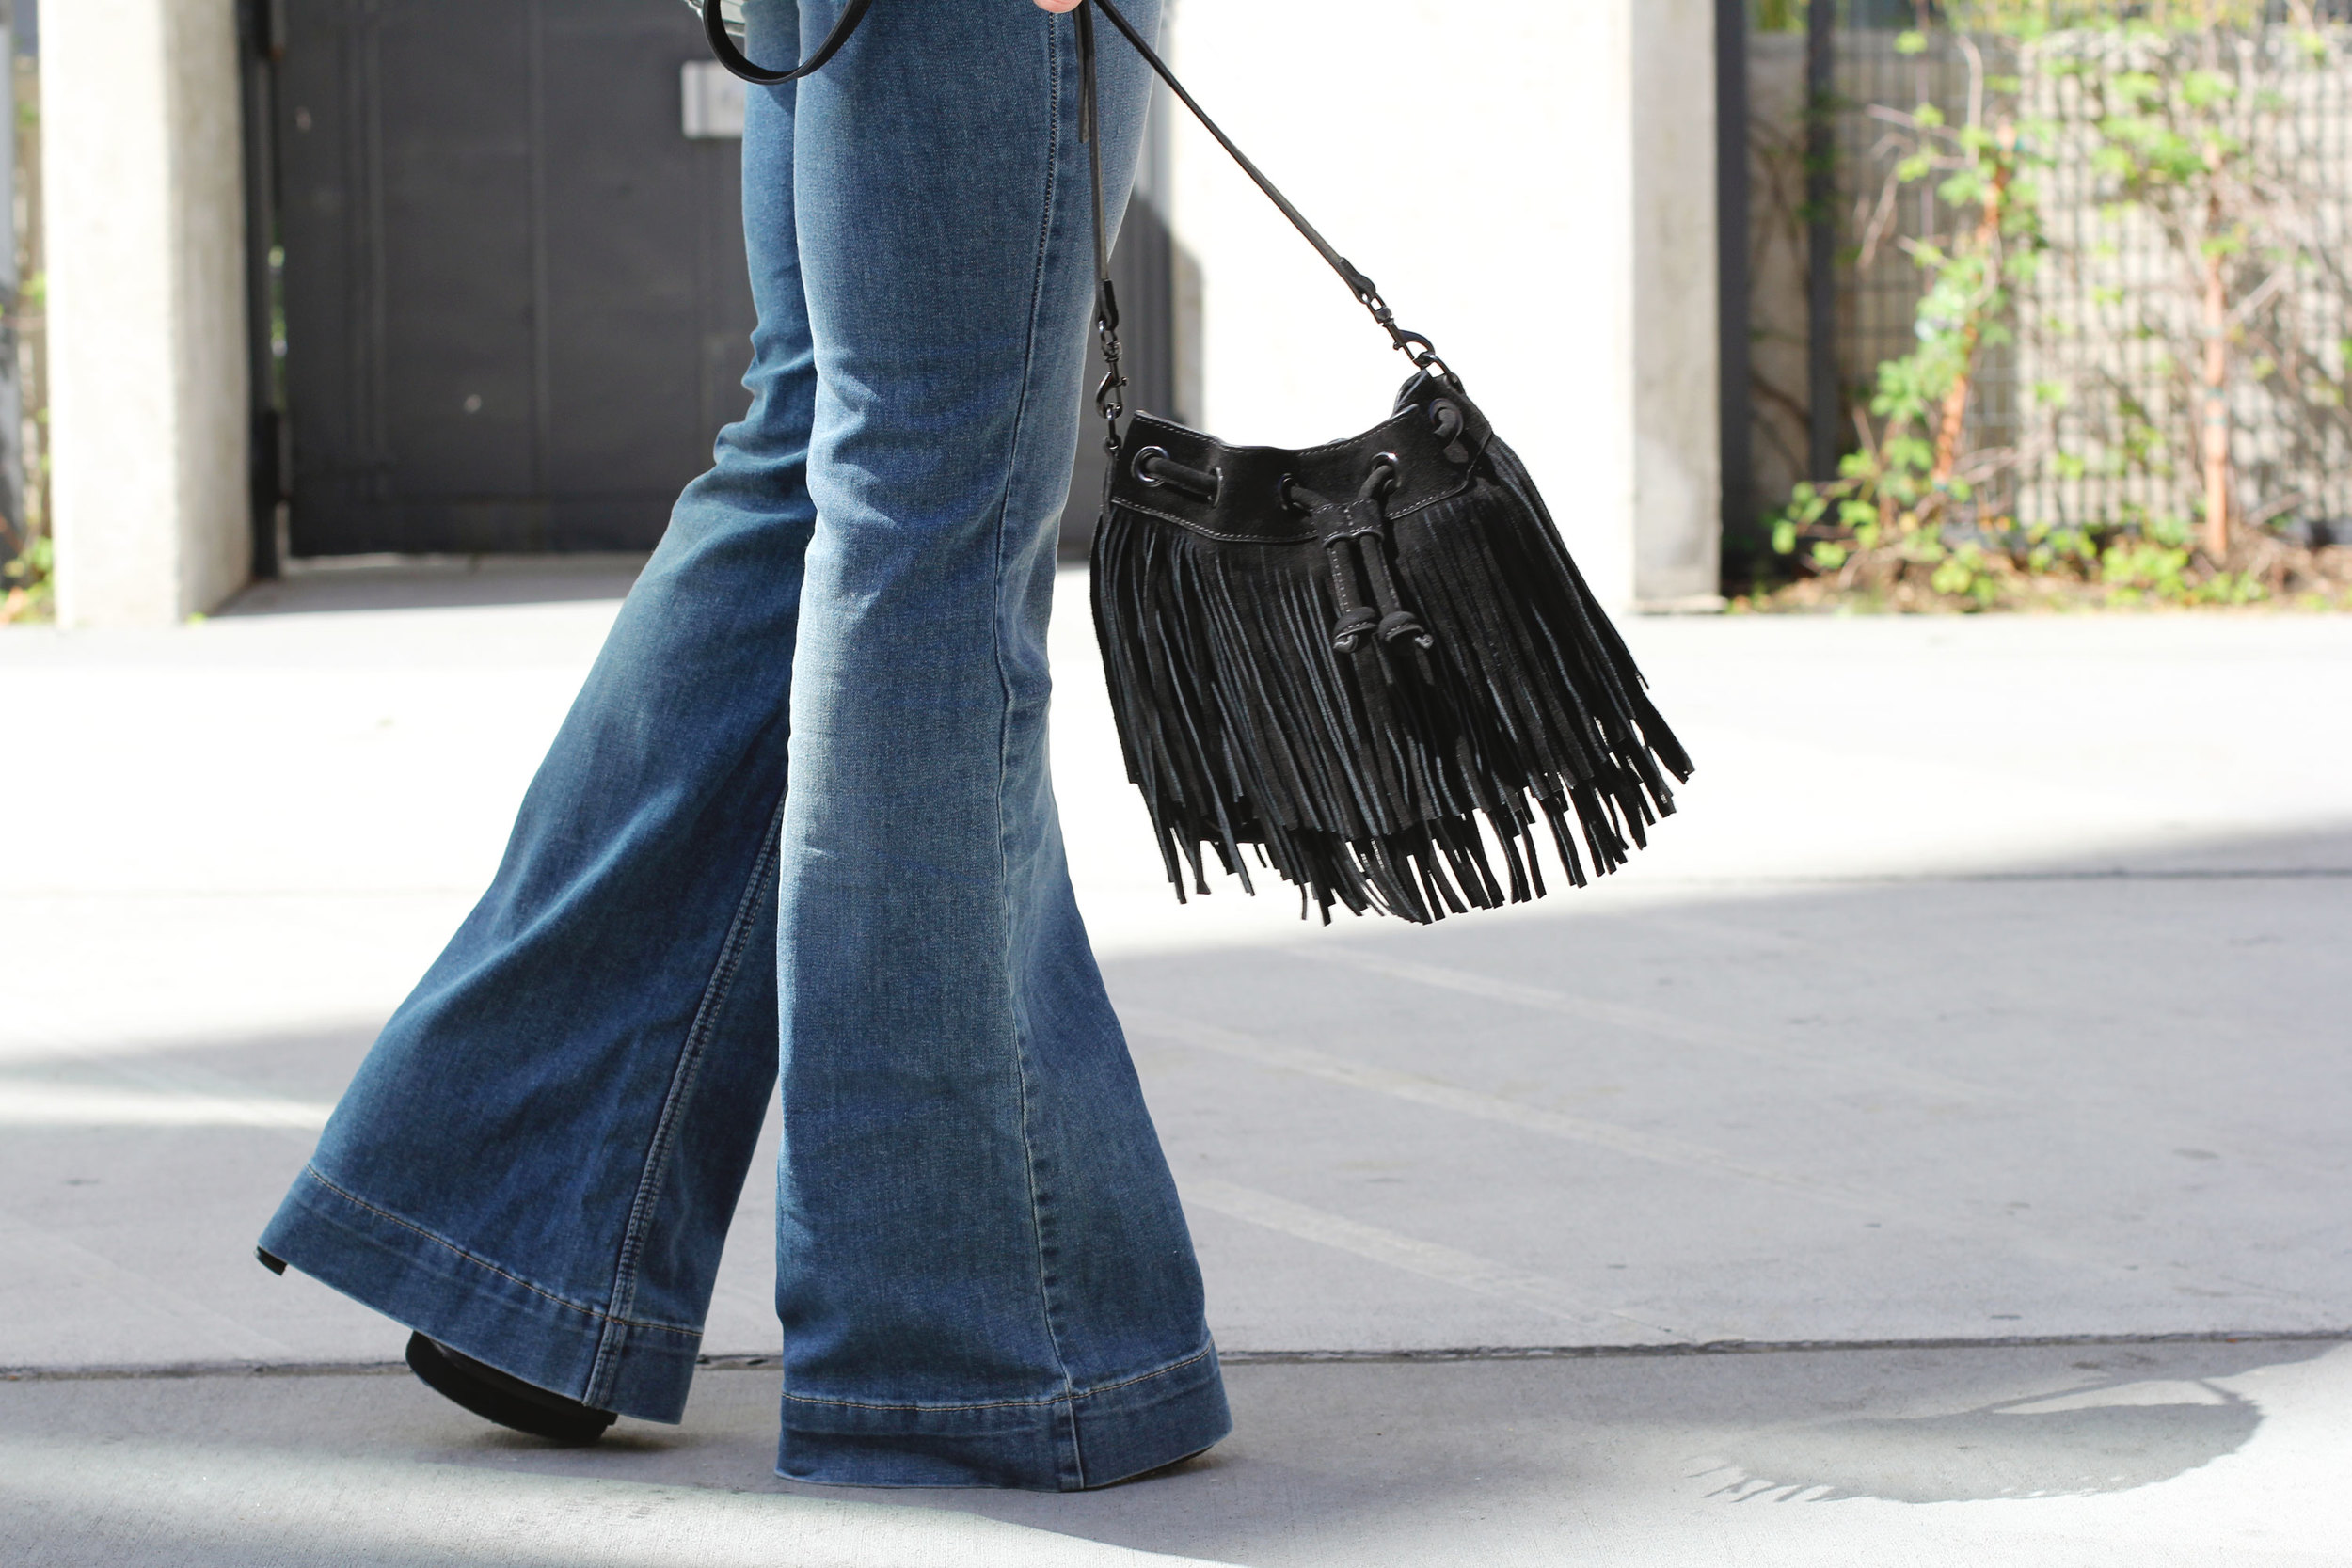 Fall Fashion, Flare Jeans, Rebecca Minkoff Fringe Bucket Bag, Abercrombie & Fitch Drapey Wrap Front Shirt, 70s Fashion Trend